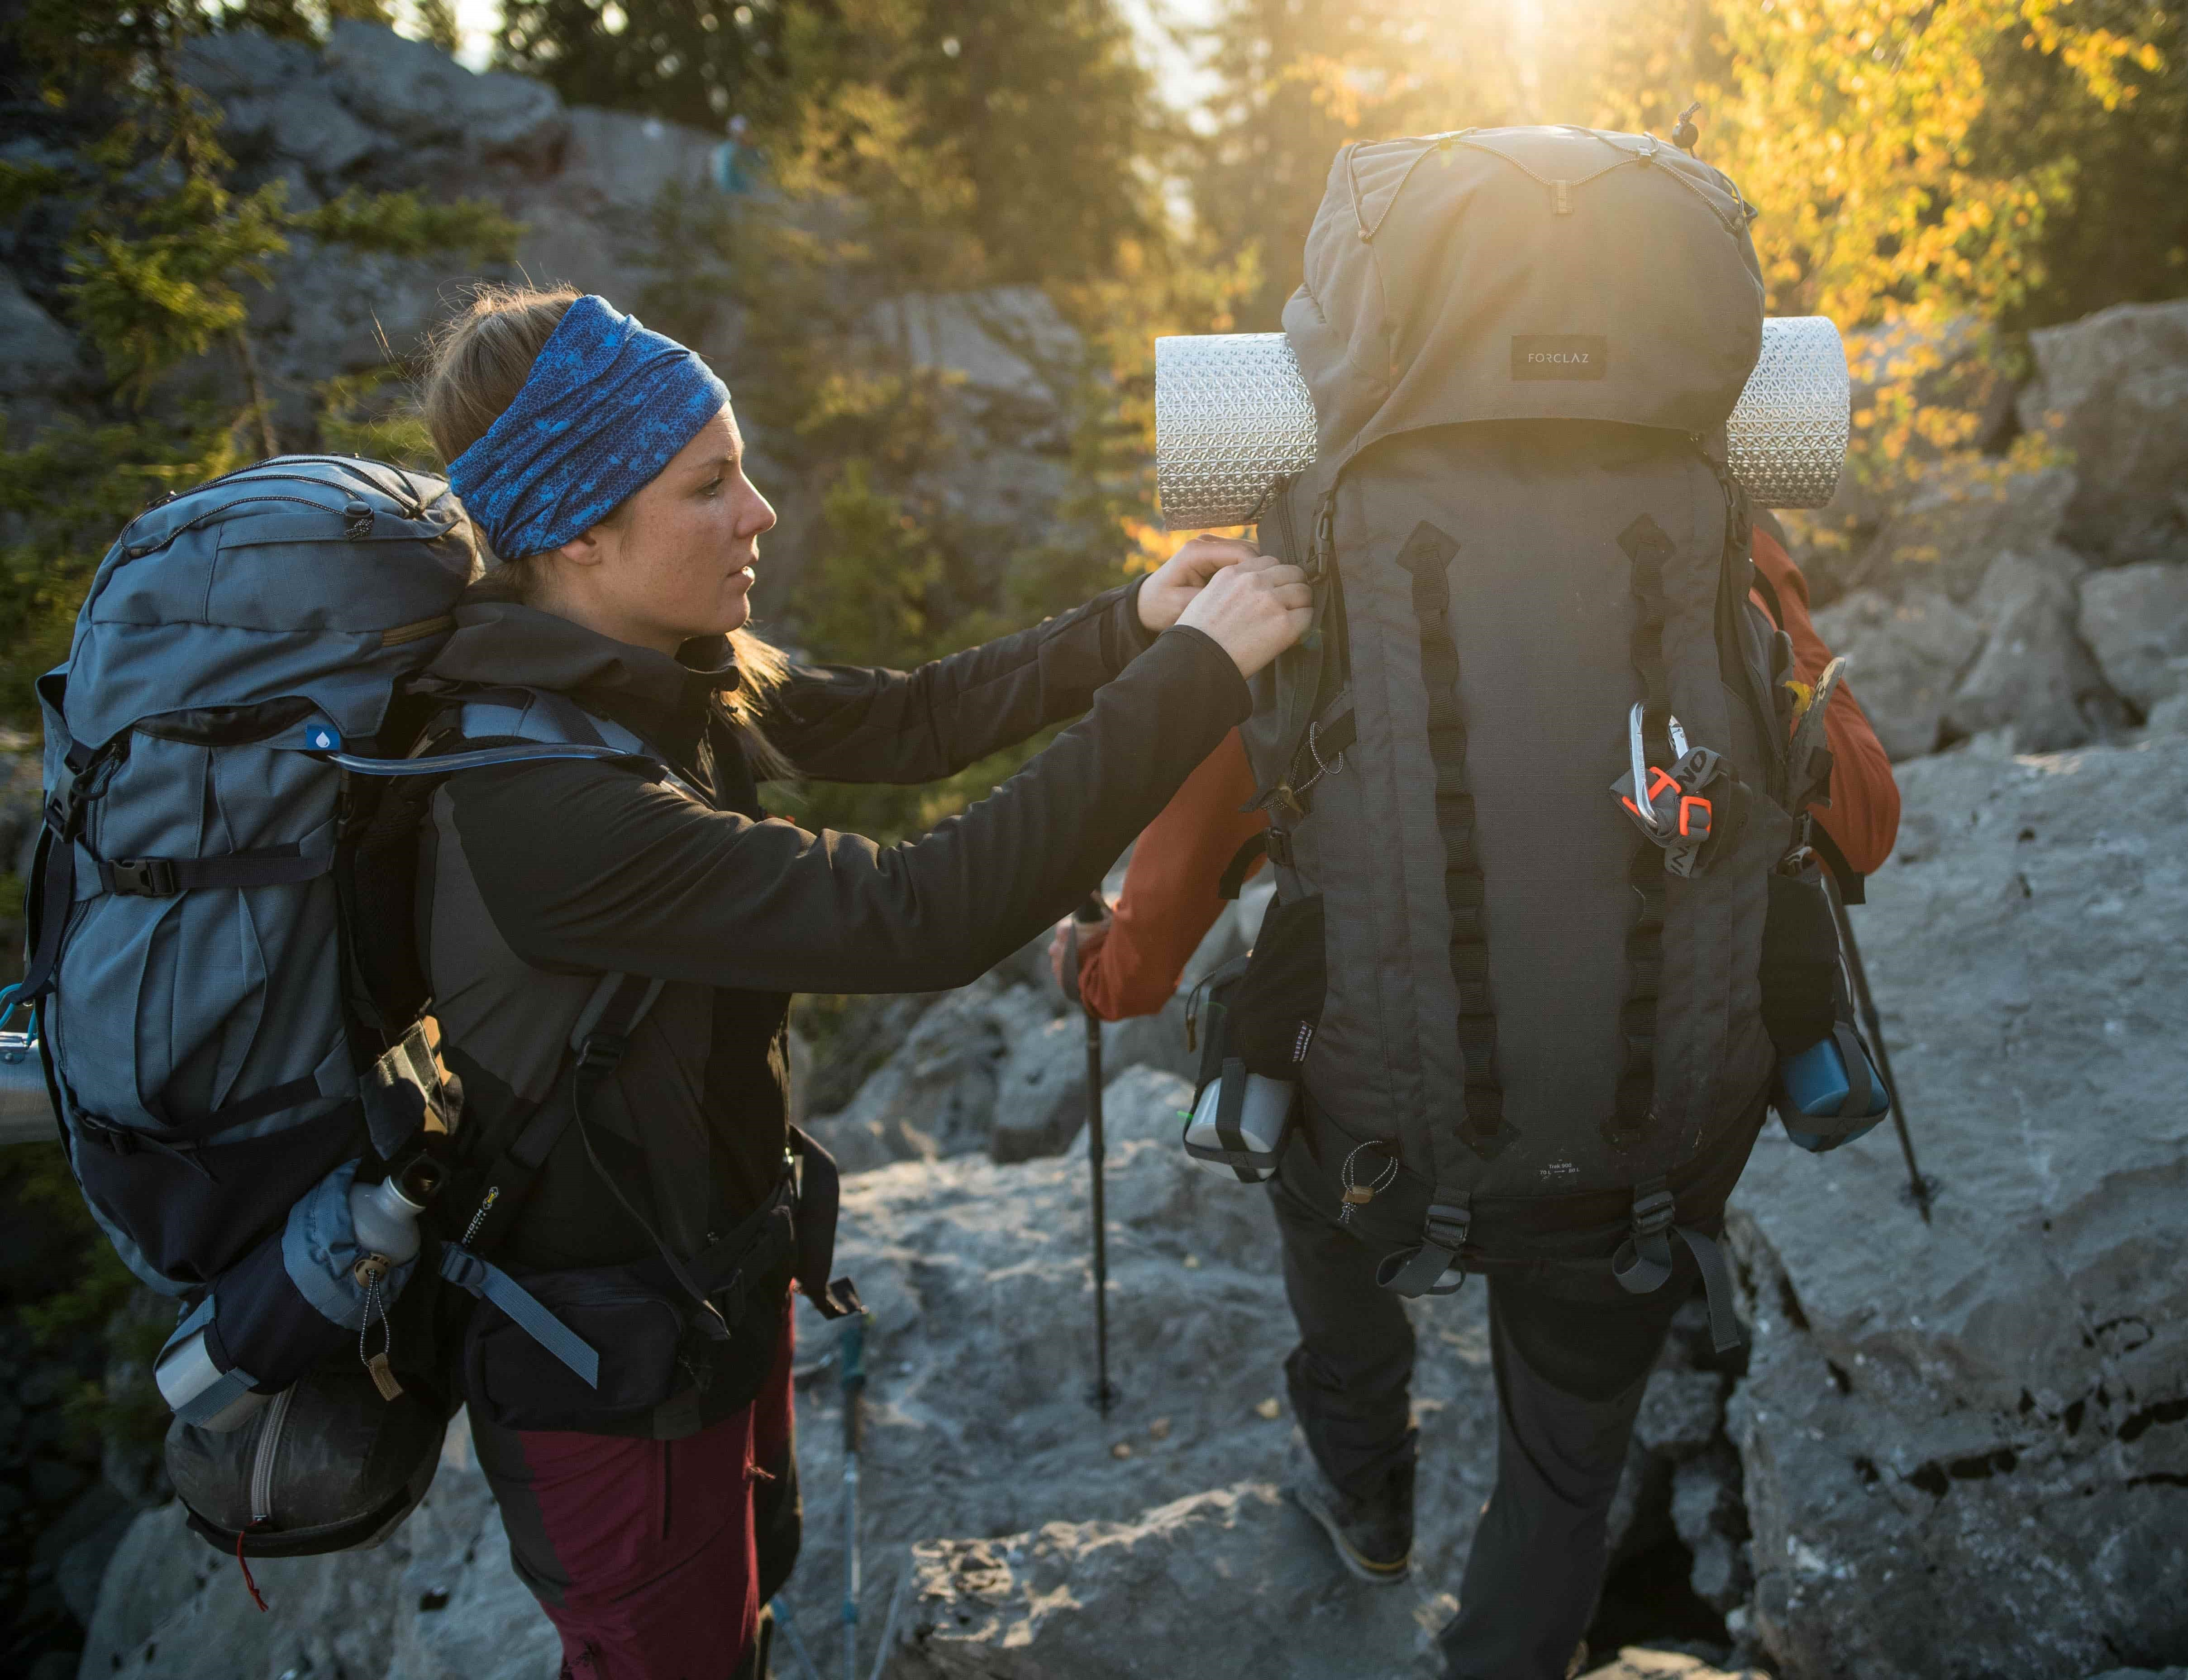 How to look after your Trekking Equipment (Day)